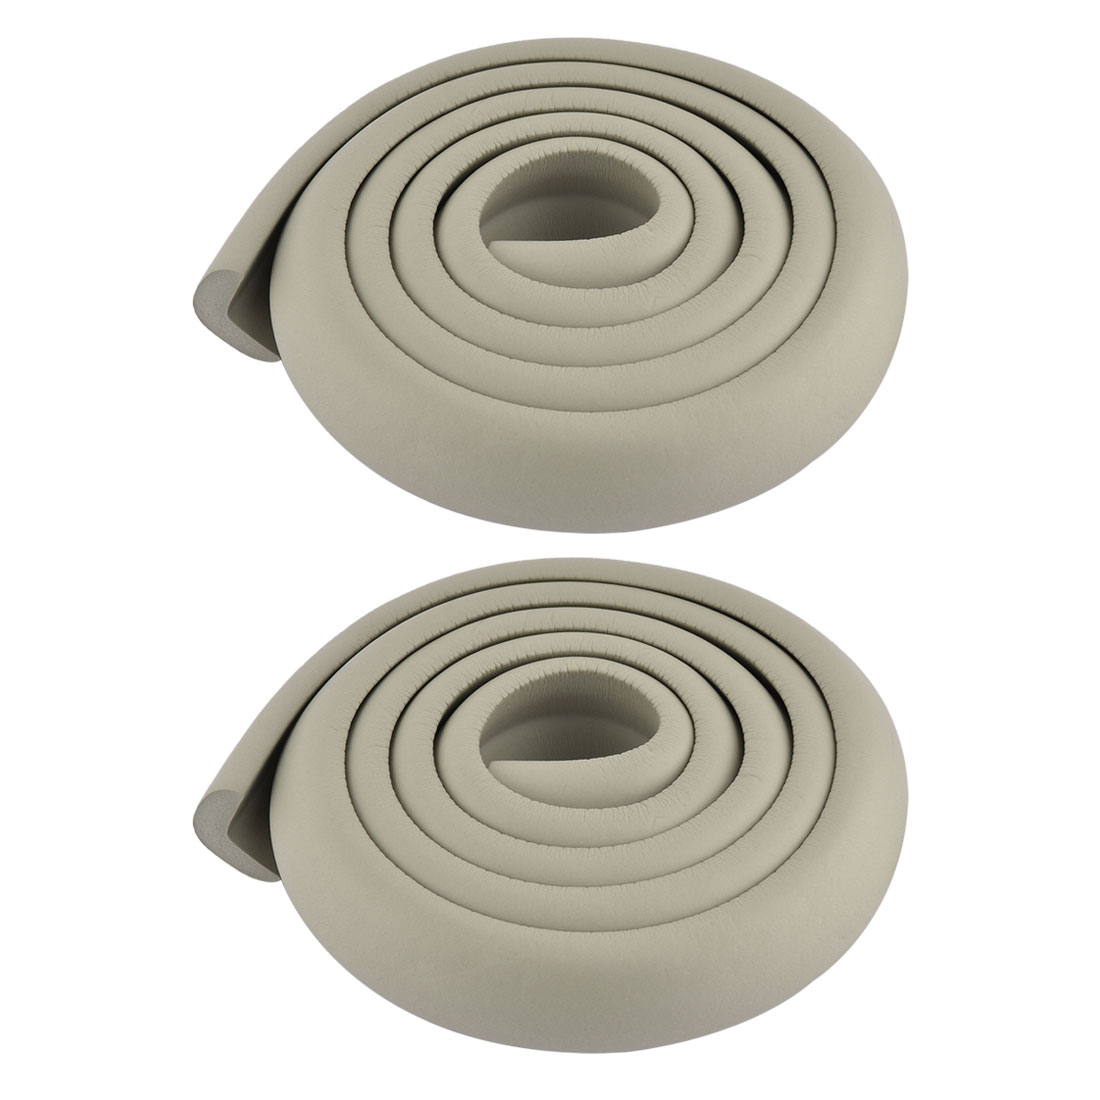 Room Furniture Dresser Foam Rubber Corner Edge Cover Protector Cushion Gray 2pcs